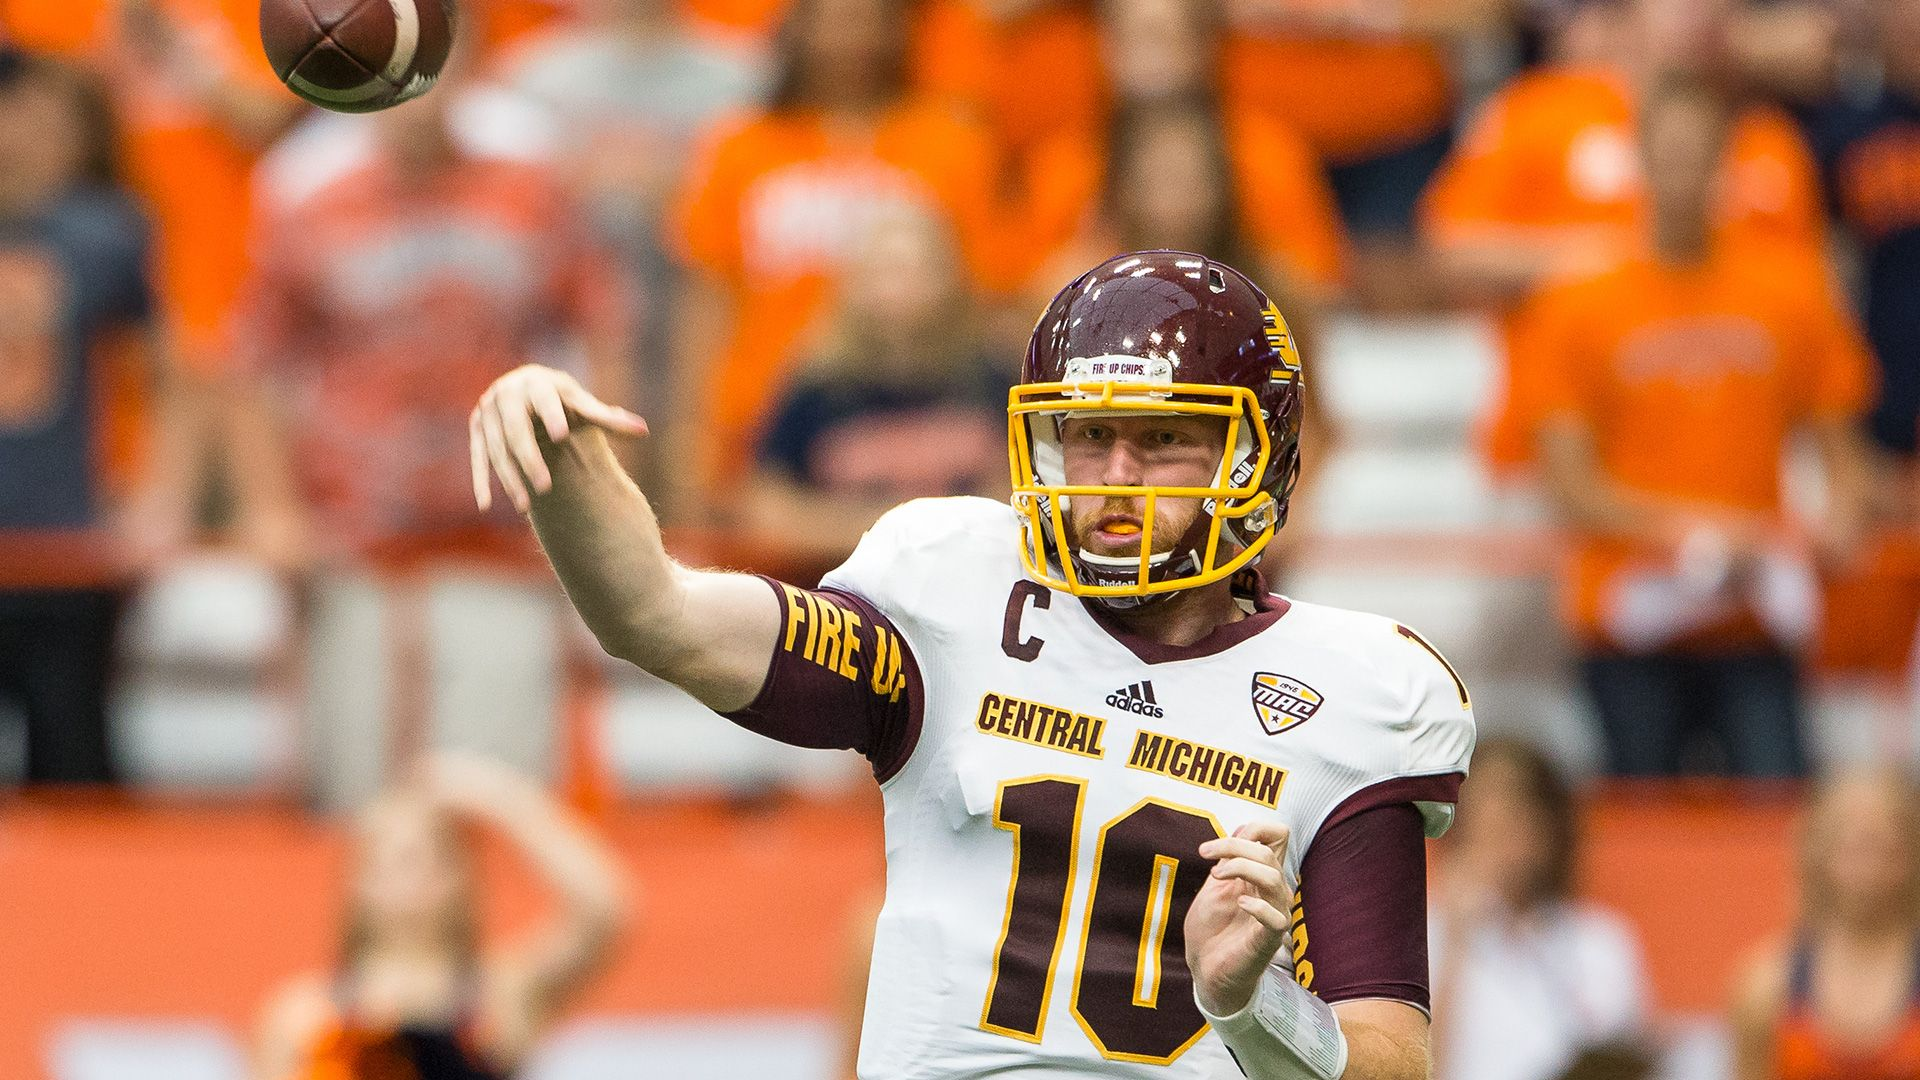 Central Michigan at Western Michigan (With images) Ufc